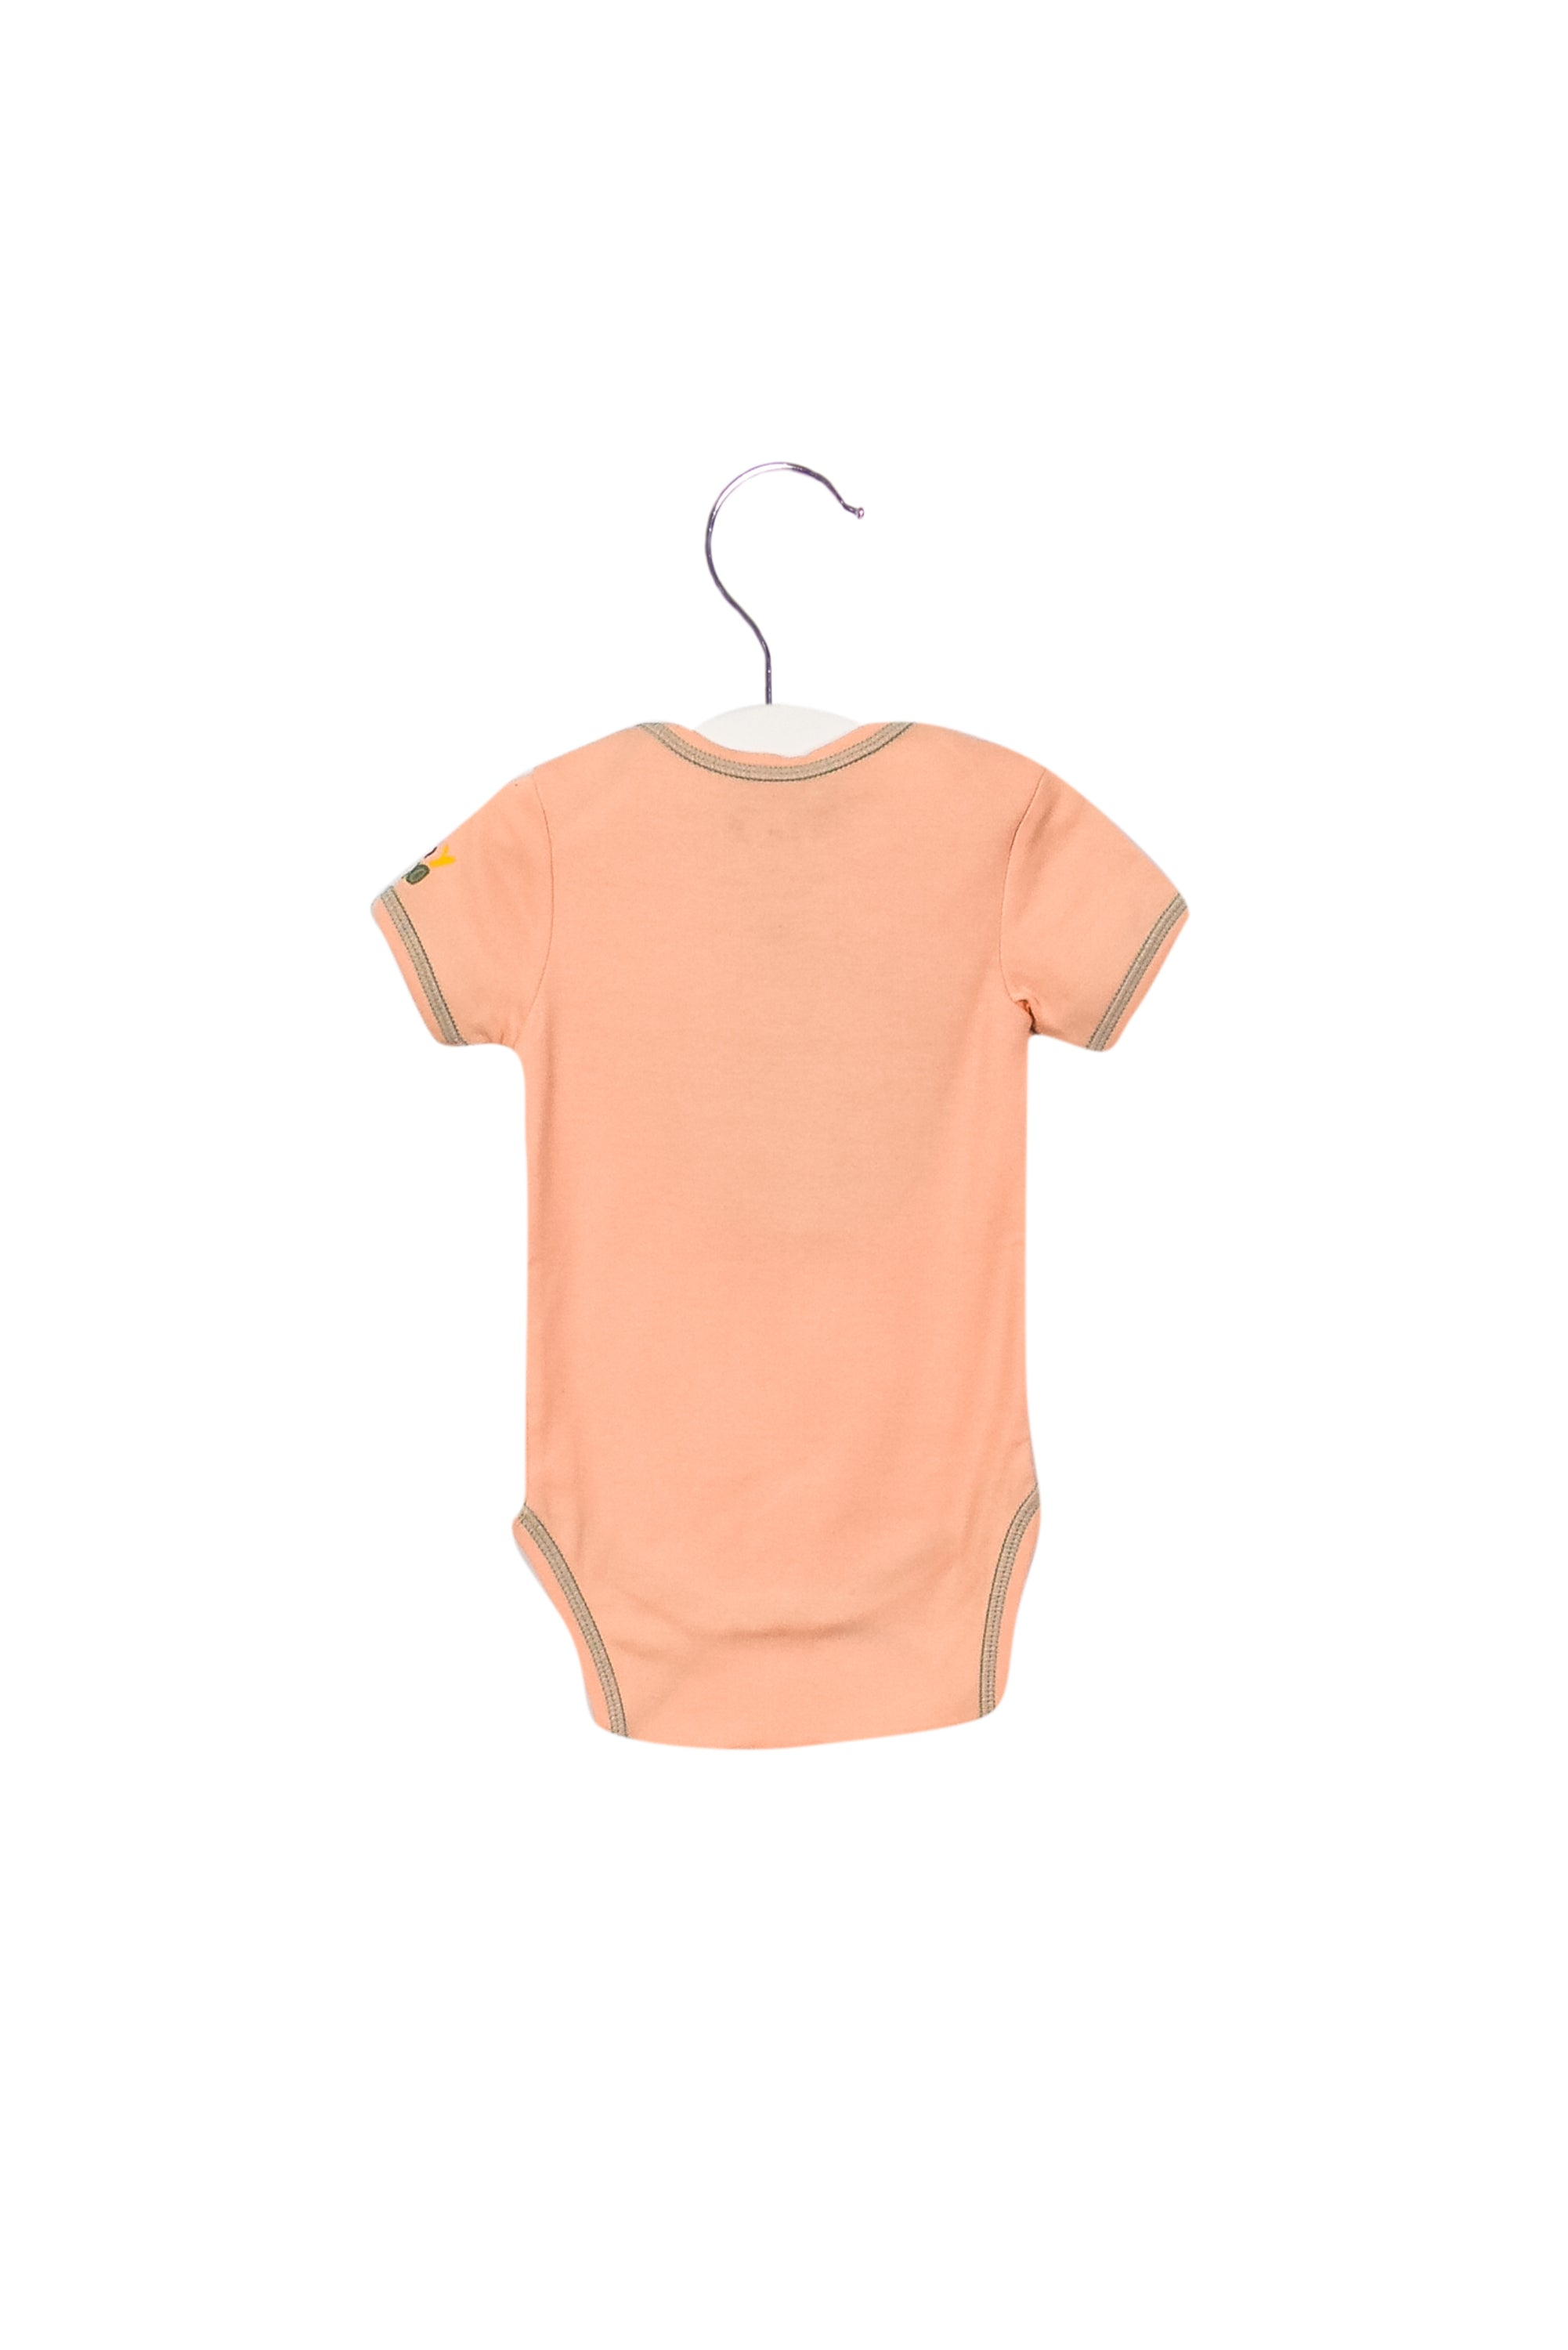 10034023 Baby Hero Baby~Bodysuit 6-12M at Retykle